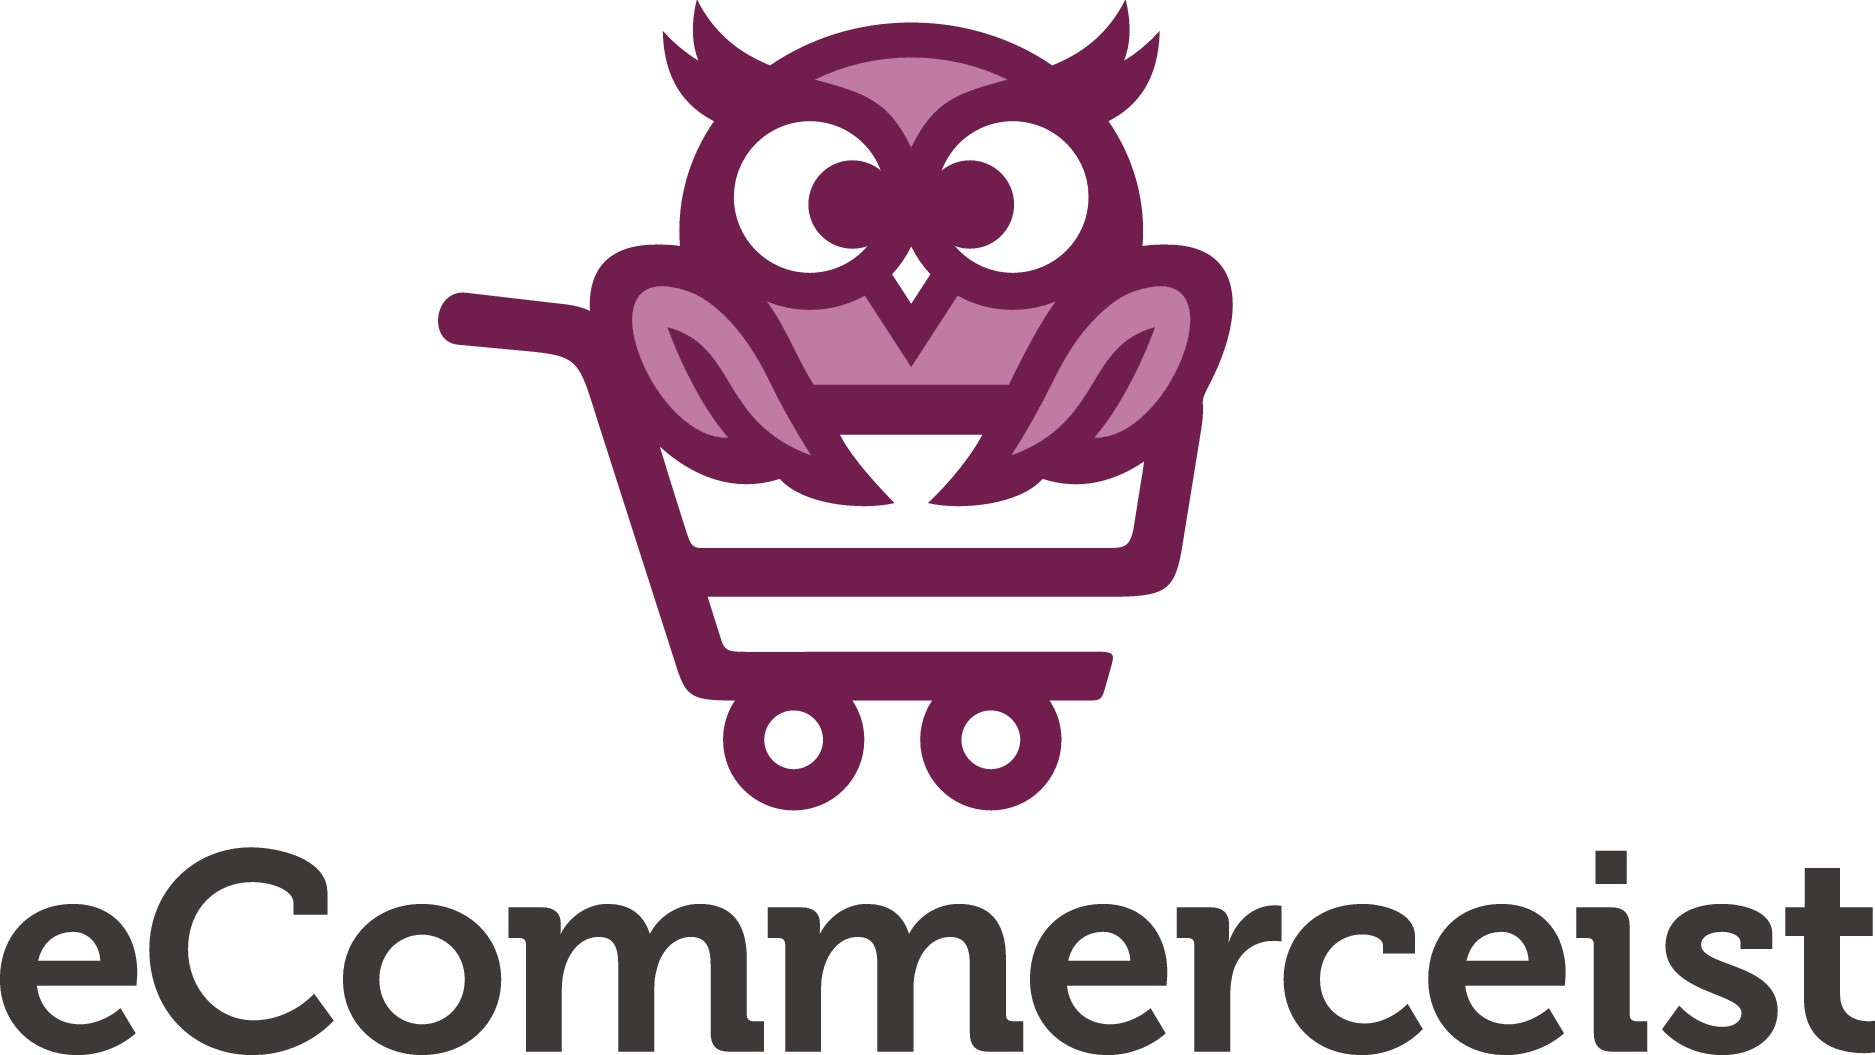 ** Guaranteed ** Create the perfect logo for eCommerceist!